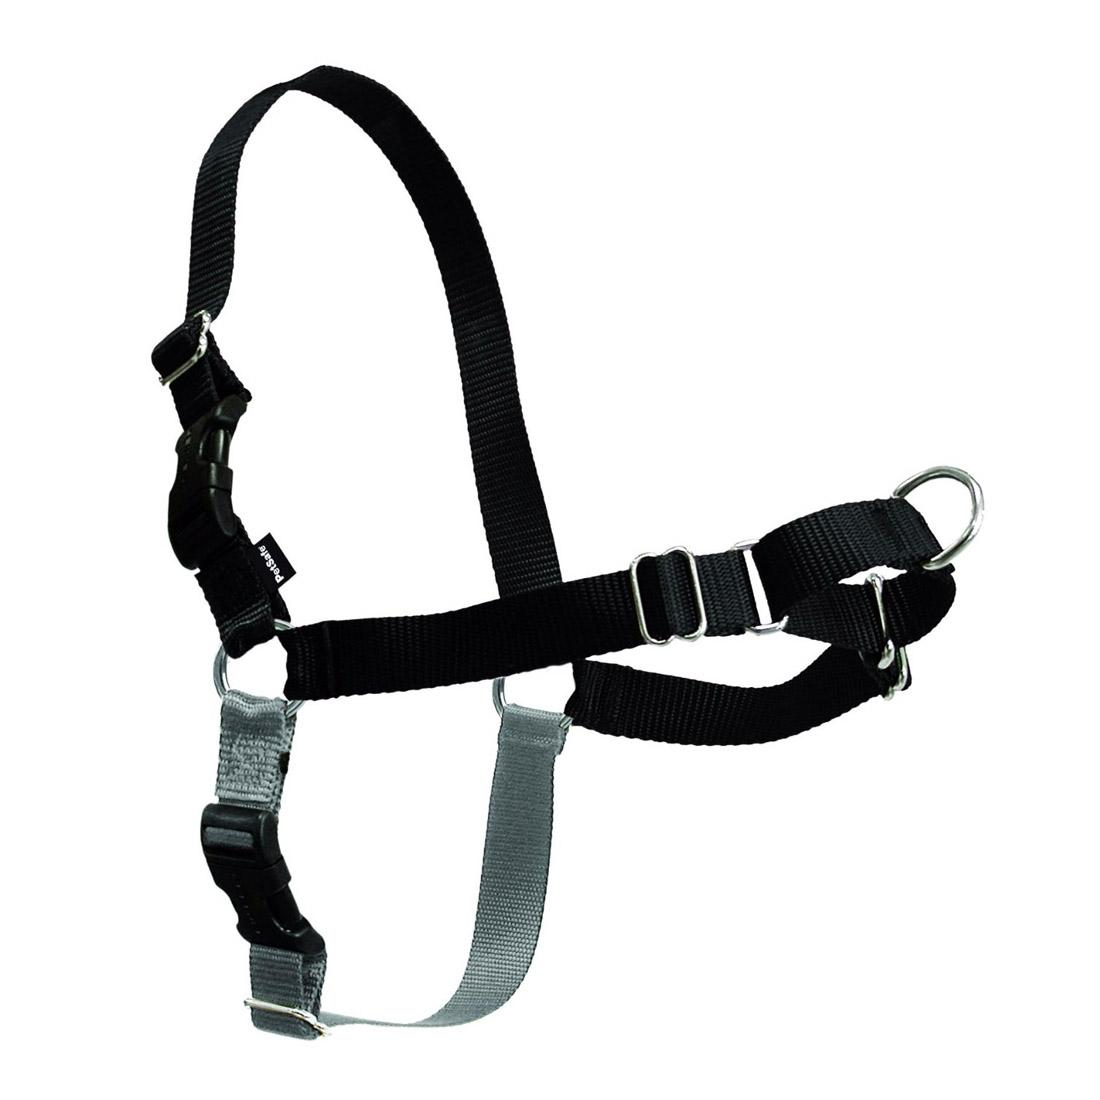 Easy Walk Nylon Harness by Premier - Black